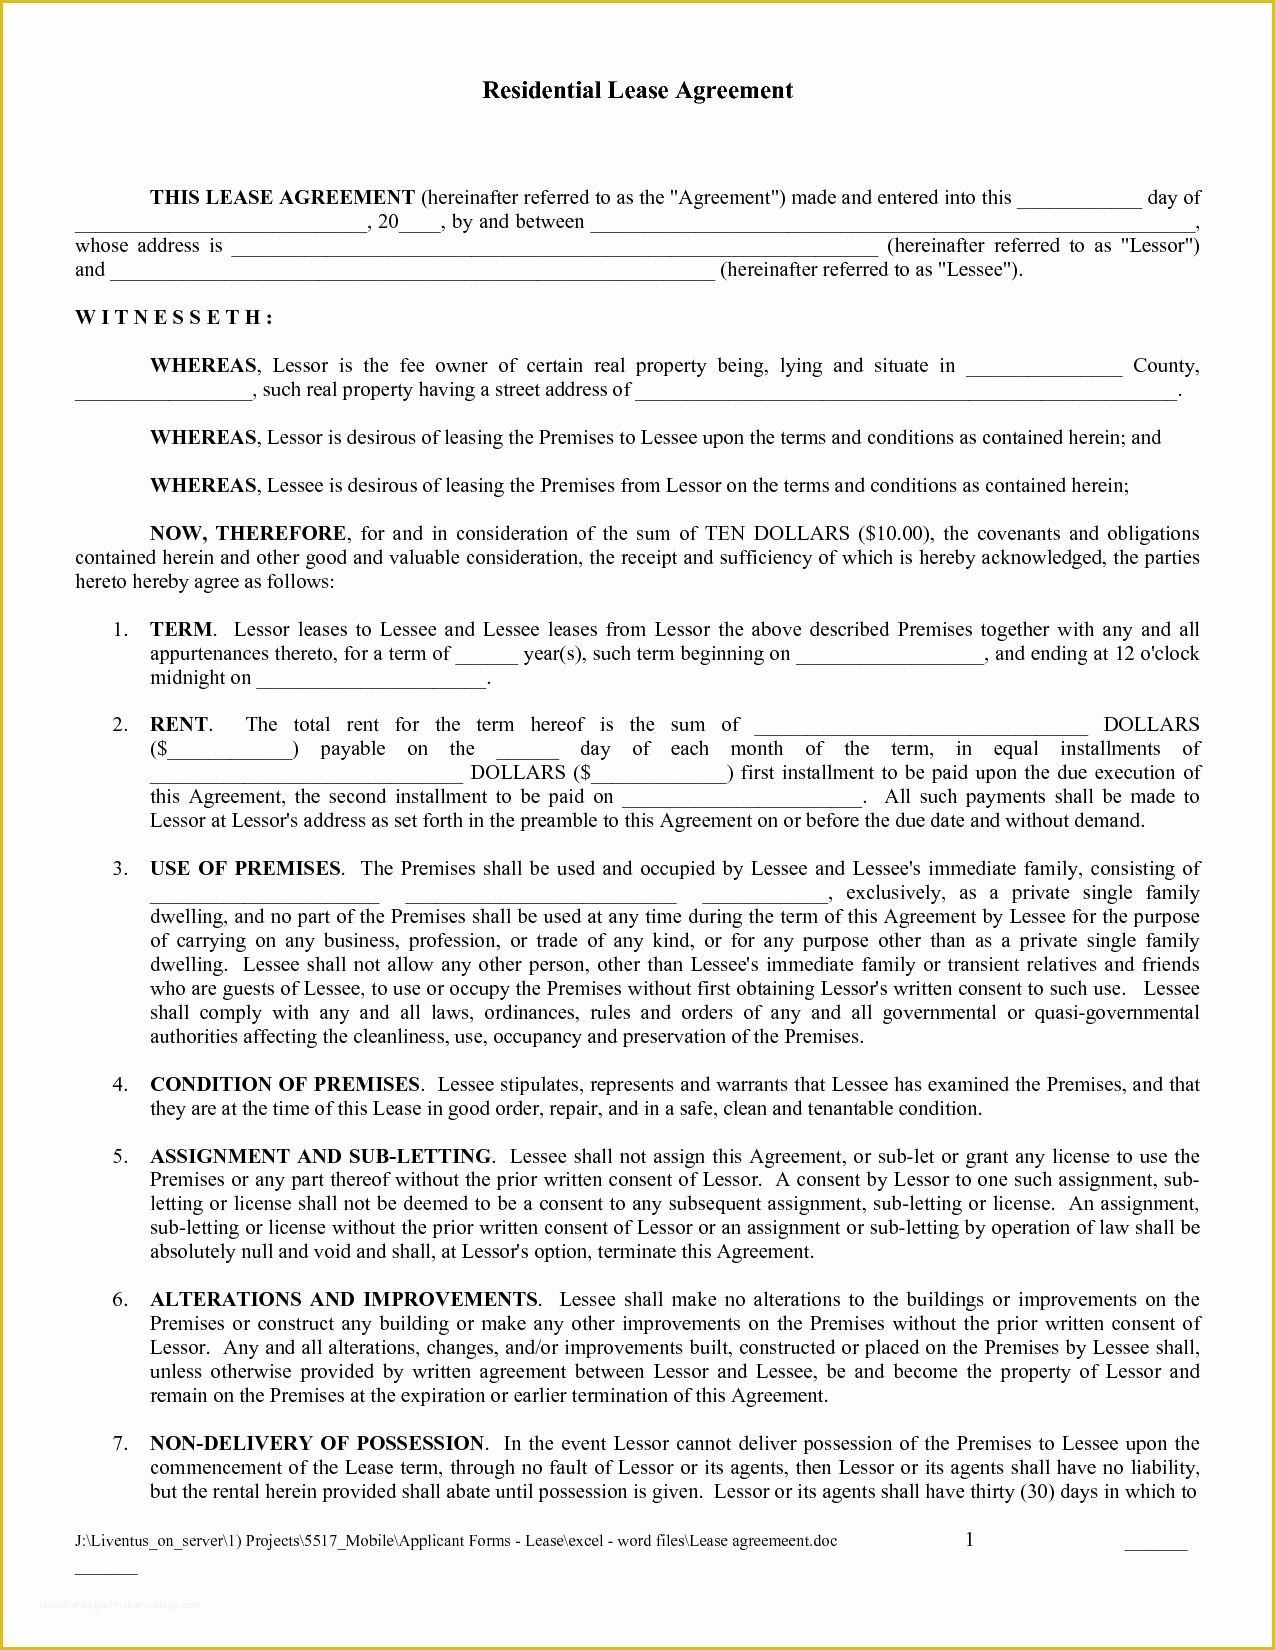 Free Blank Lease Agreement Template Of Editable Blank Rental Agreement Example For E In 2021 Lease Agreement Lease Agreement Free Printable Rental Agreement Templates